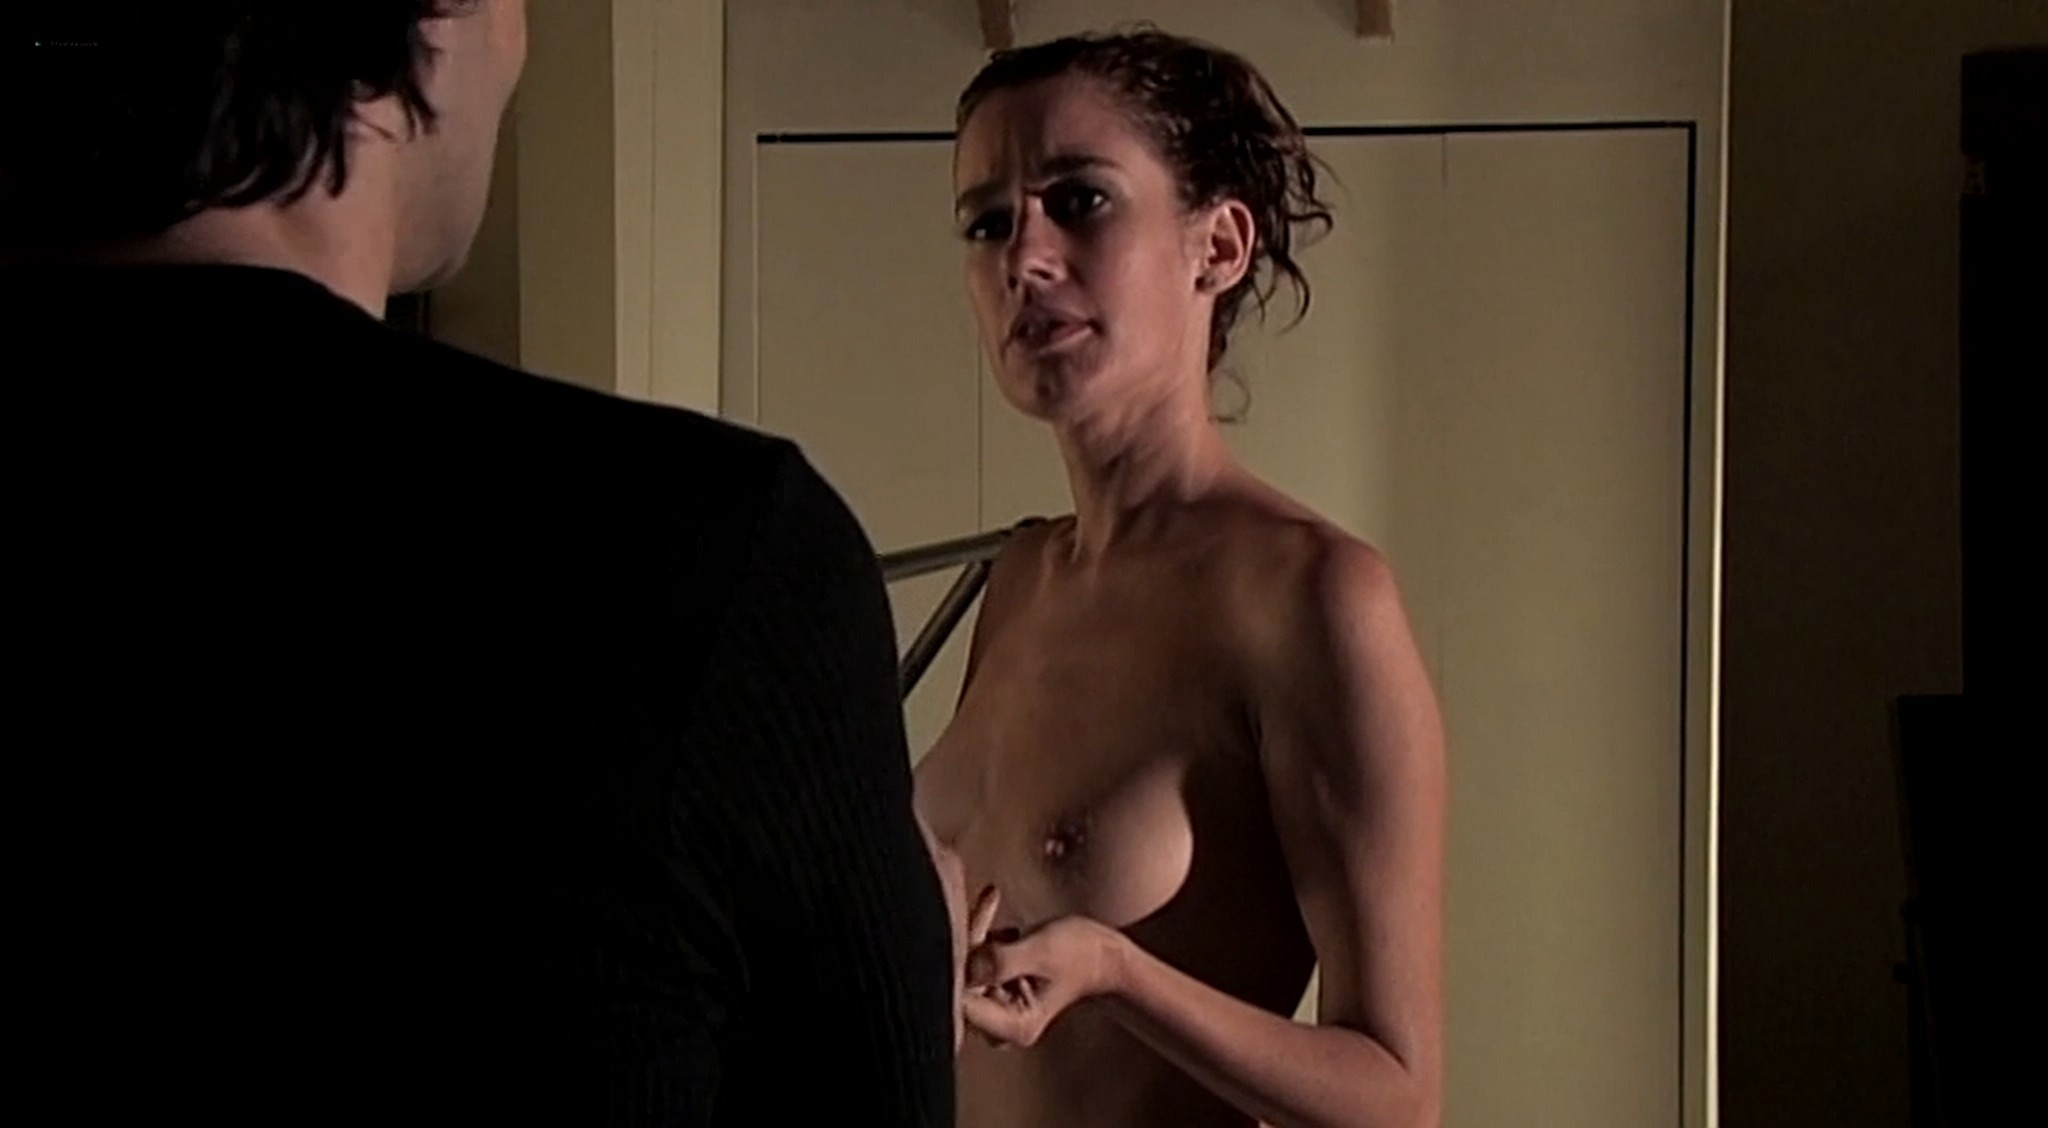 Victoria De Mare nude Roxy DeVille and others nude sex too Bio Slime 2010 DVDRip 7